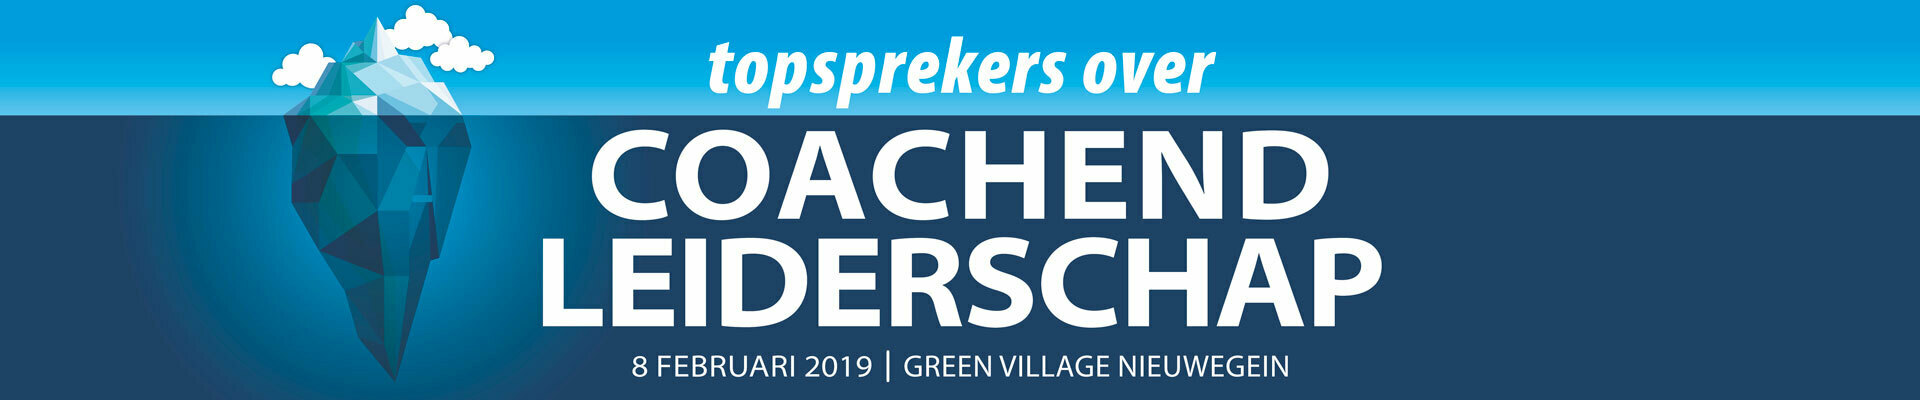 (BTW) Topsprekers over coachend leiderschap | 8 februari 2019